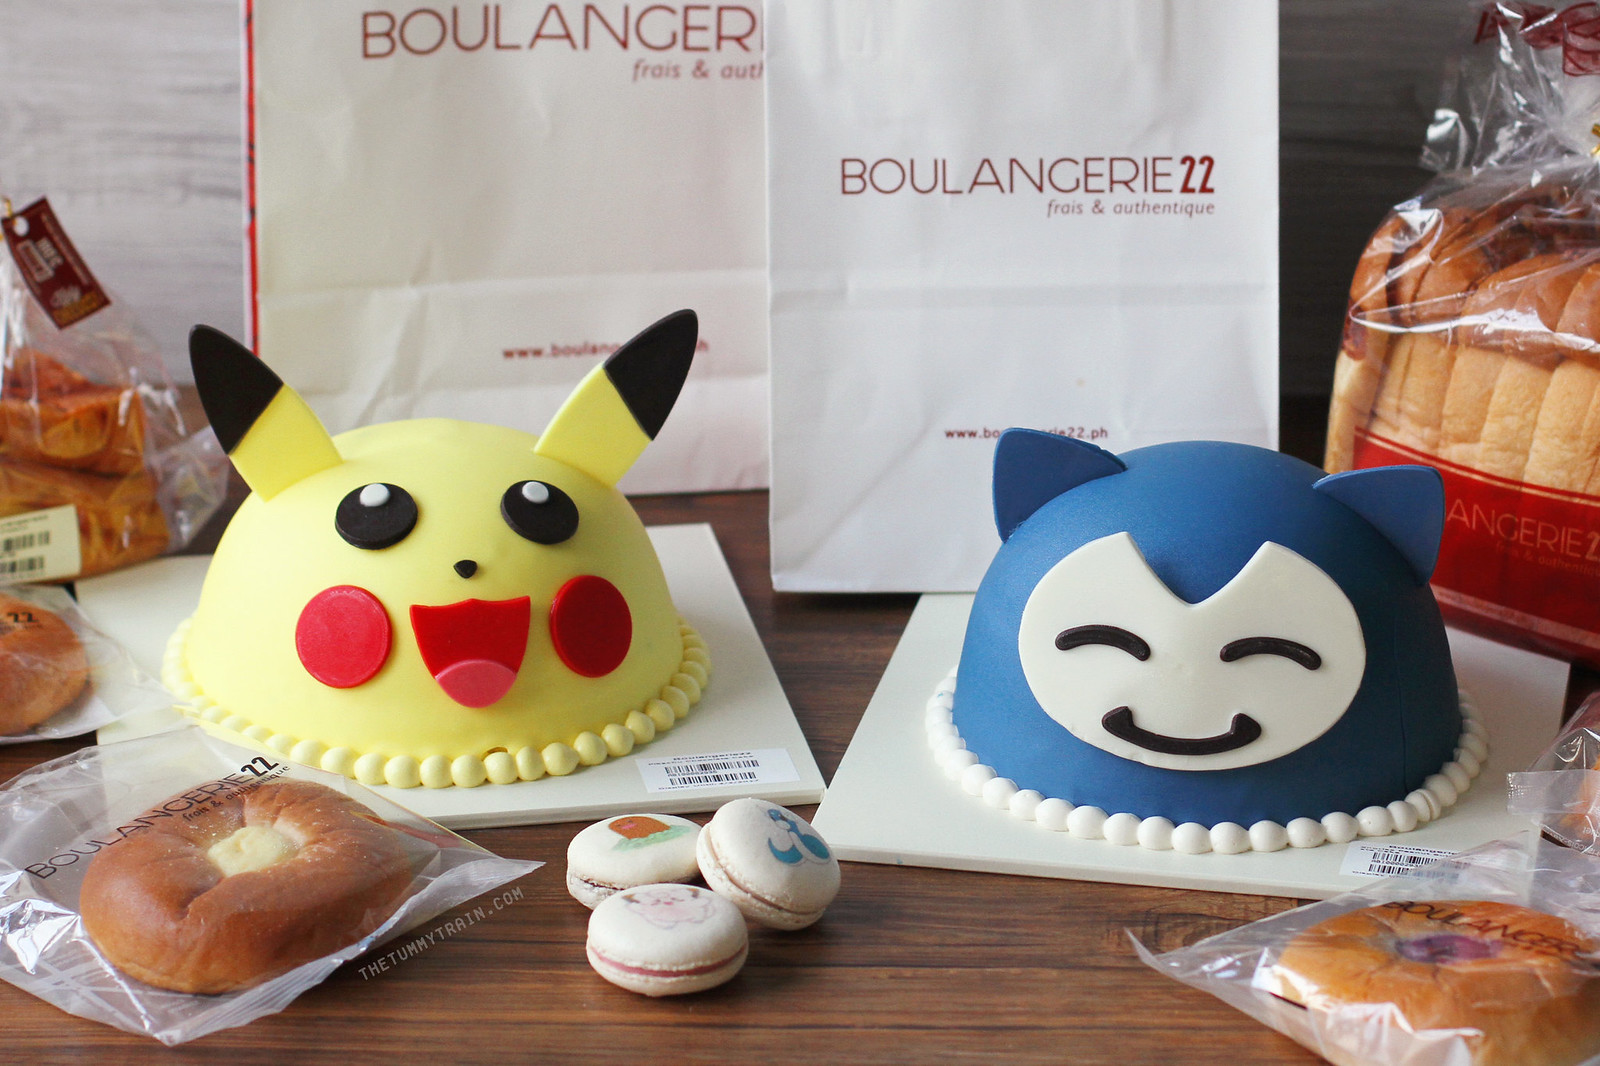 32922199230 3f791708b7 h - Fuel your Pokemon Go craze with Boulangerie22 Pokemon Cakes